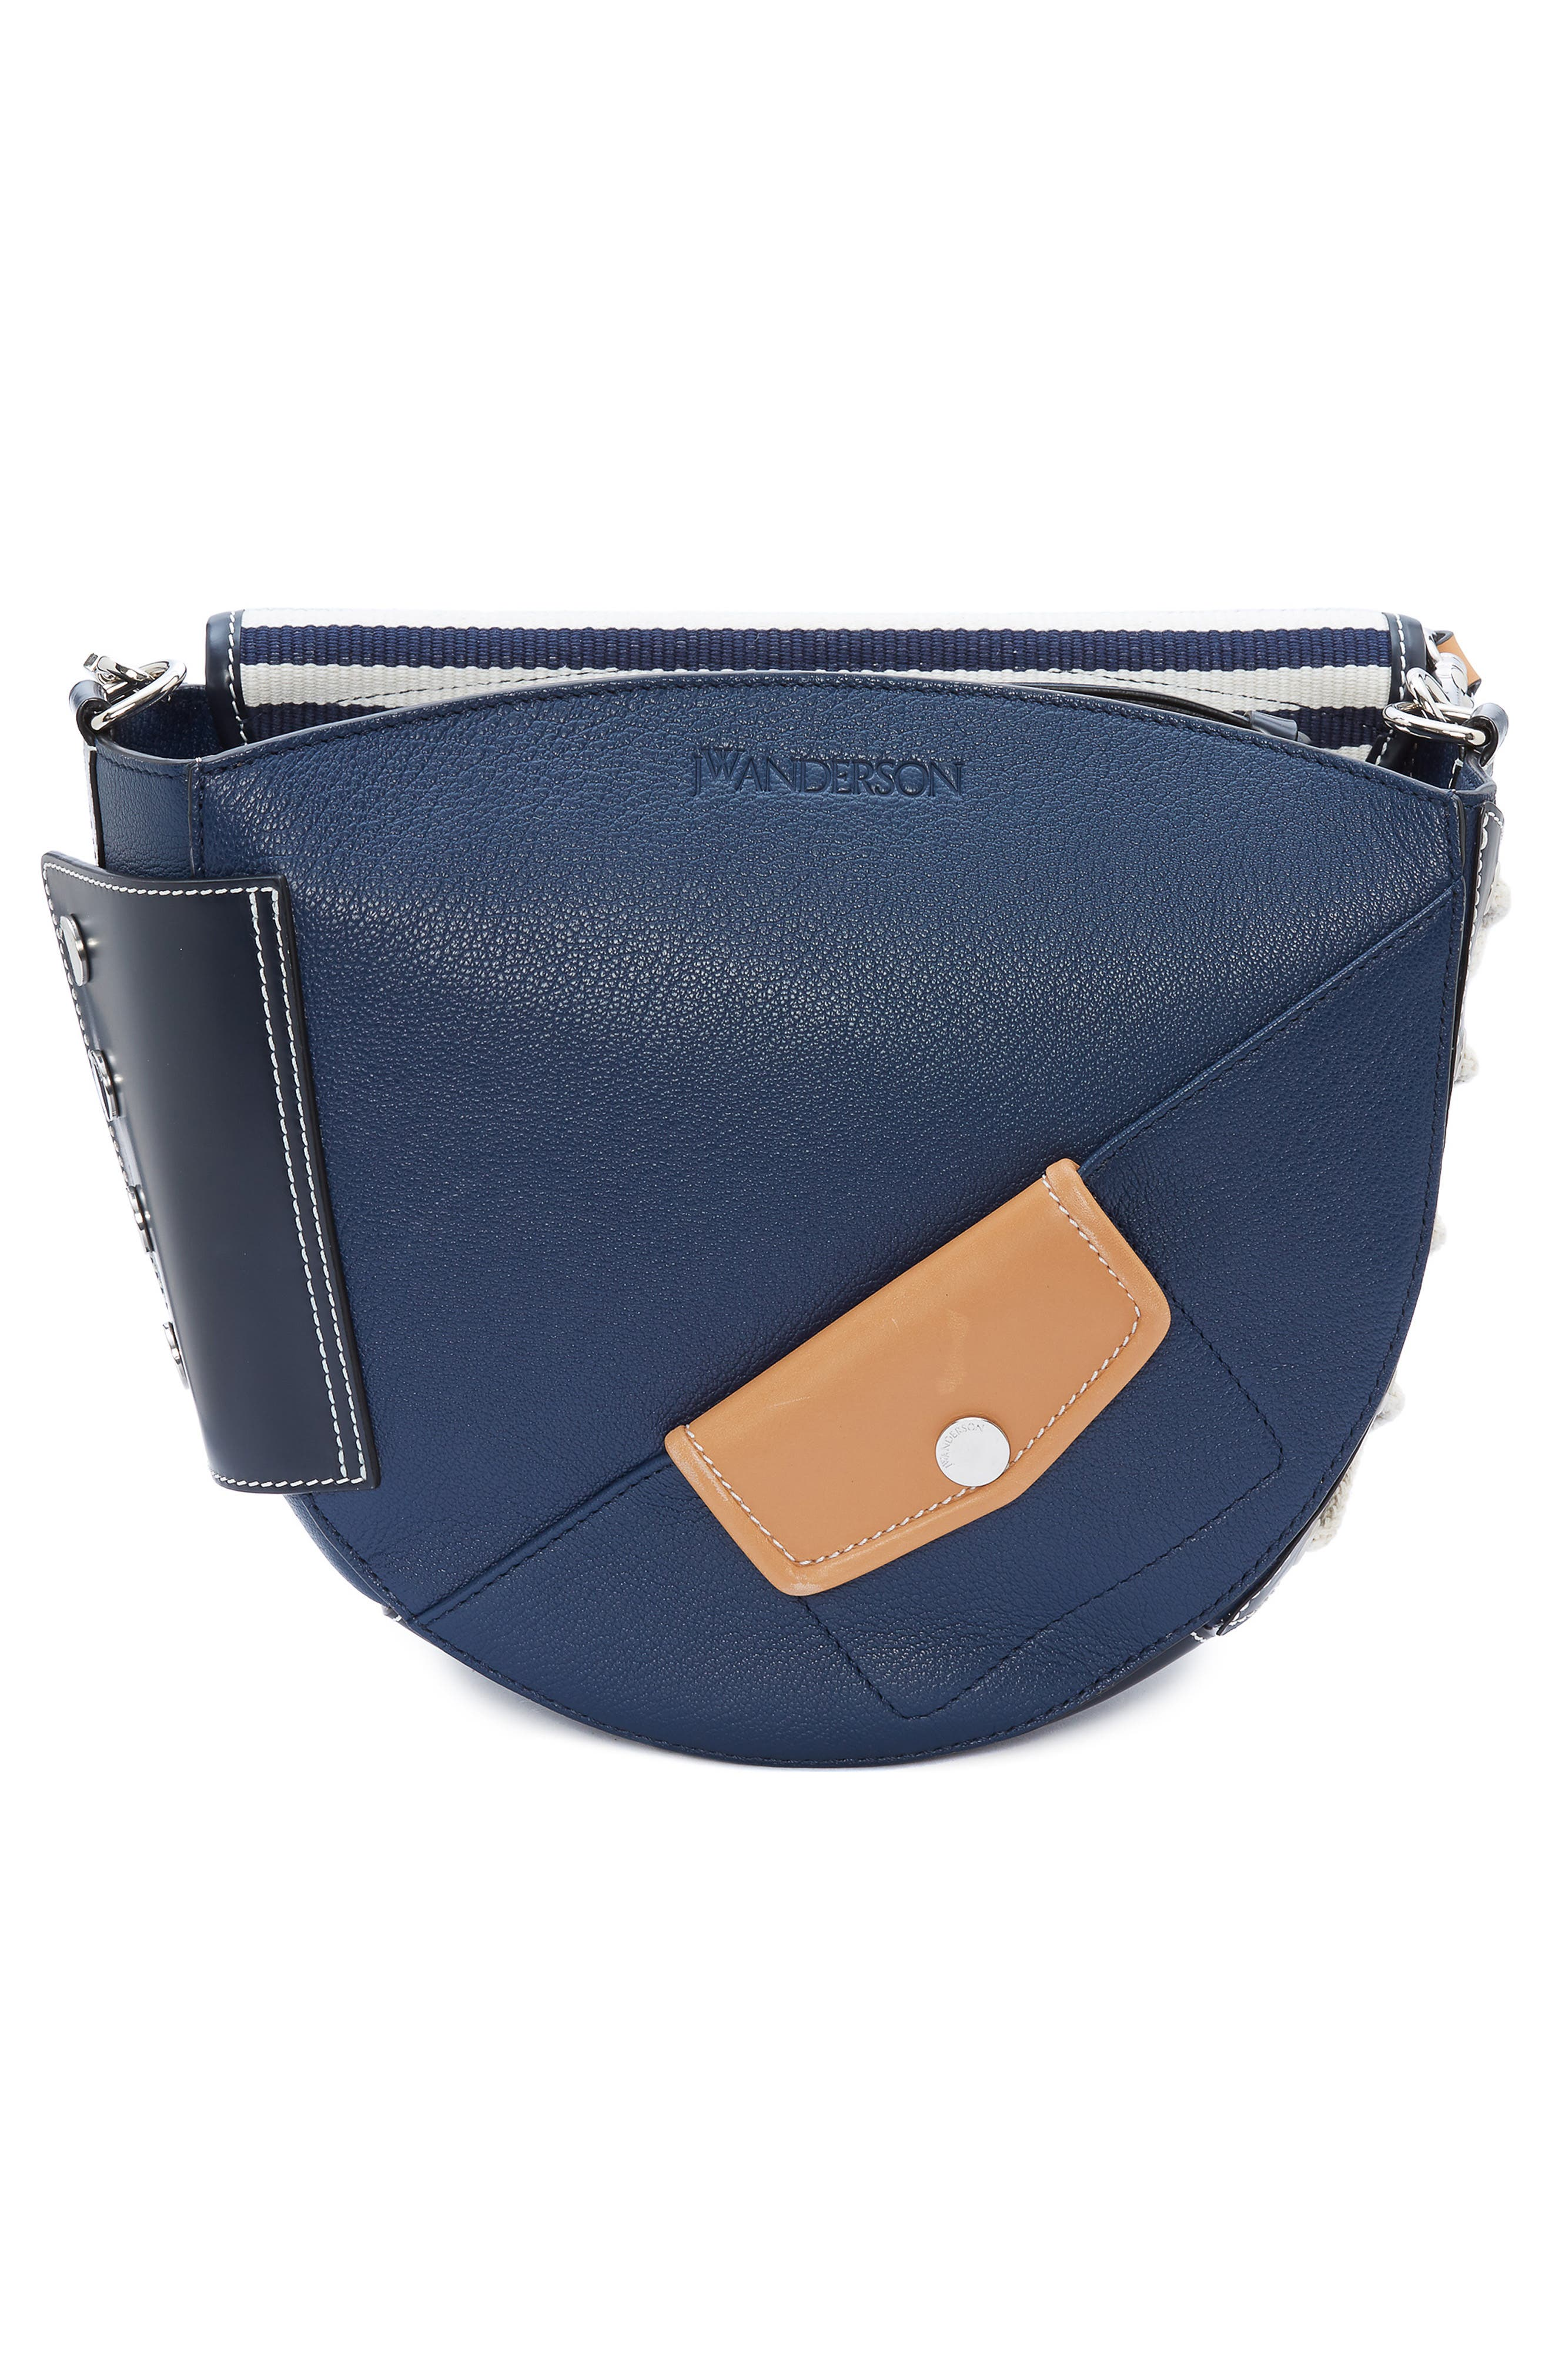 JW ANDERSON,                             Small Bike Leather & Canvas Crossbody Bag,                             Alternate thumbnail 2, color,                             NAVY BRETON